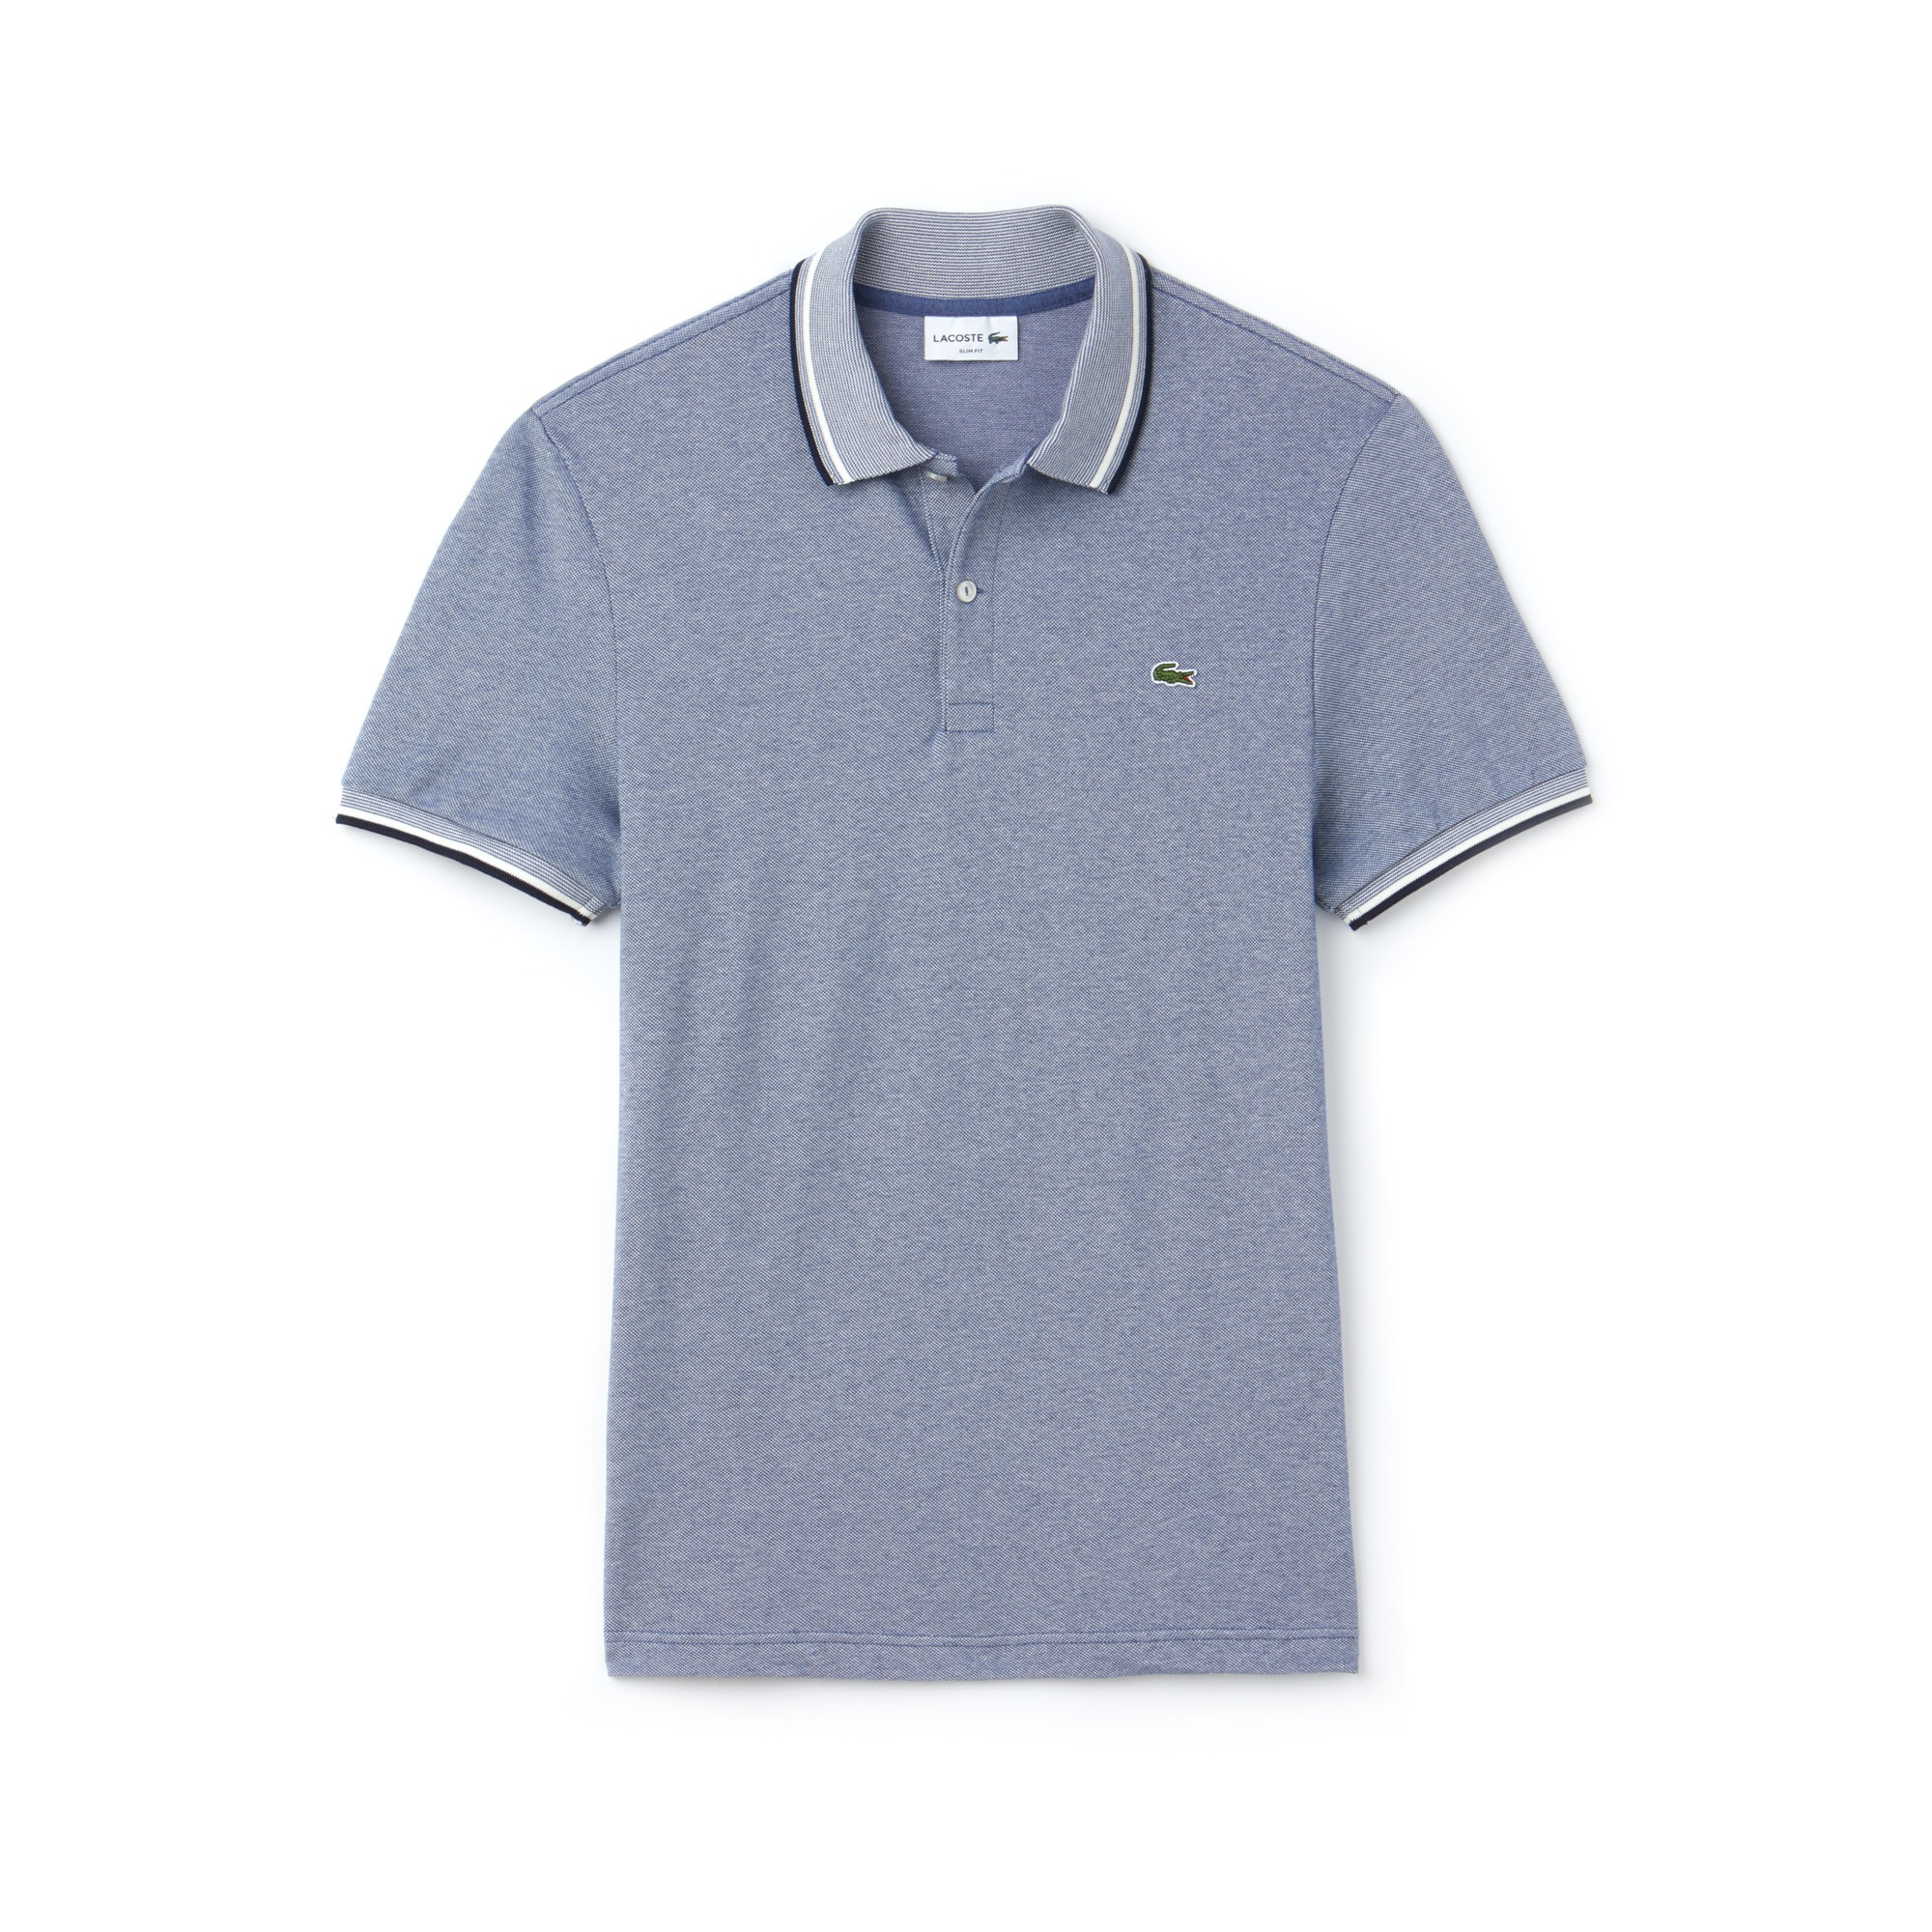 Men's Lacoste Slim Fit Contrast Accents Caviar Piqué Polo